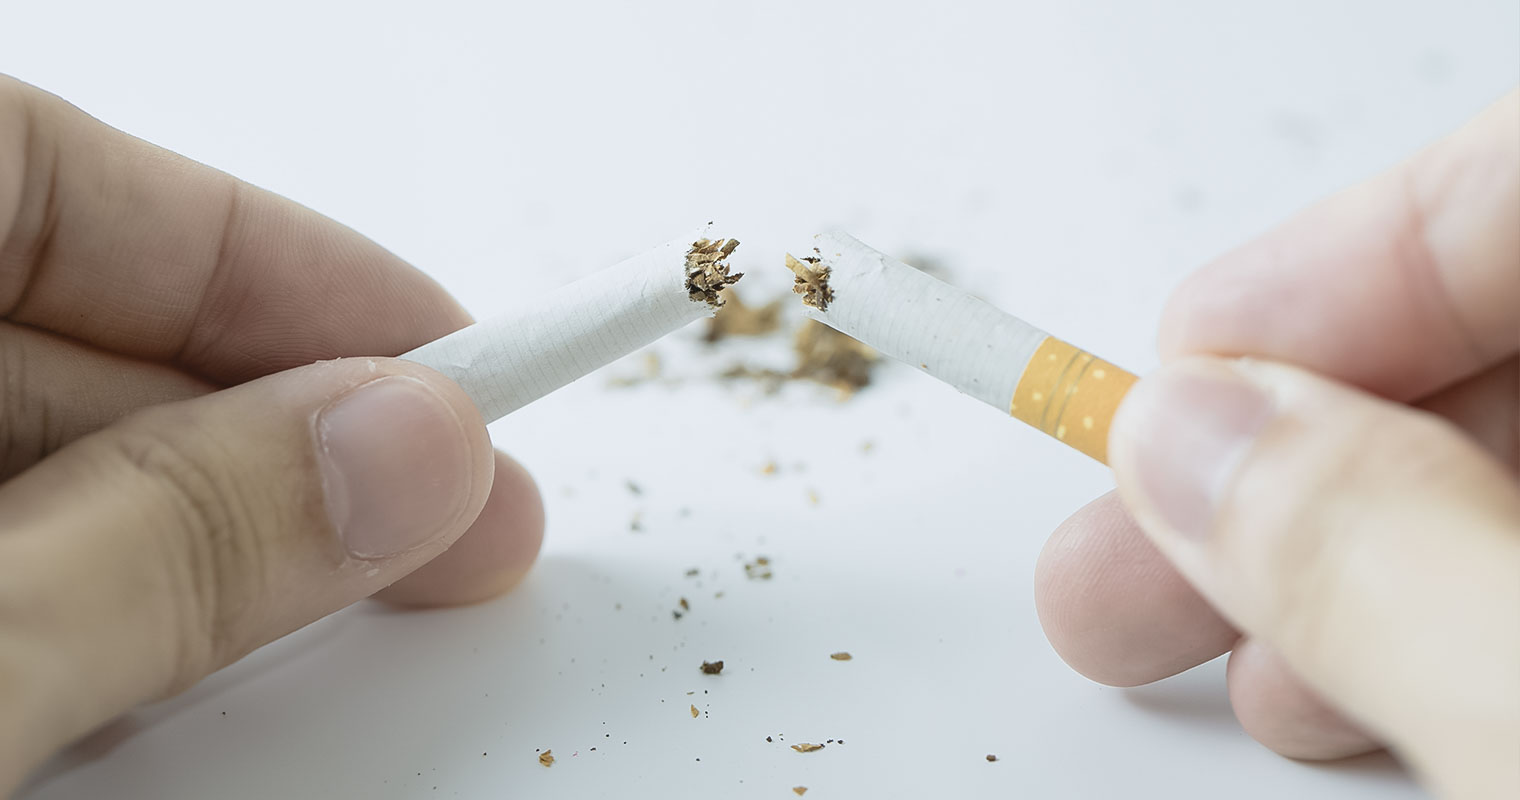 Breaking apart a piece of cigarette to expose the tobacco